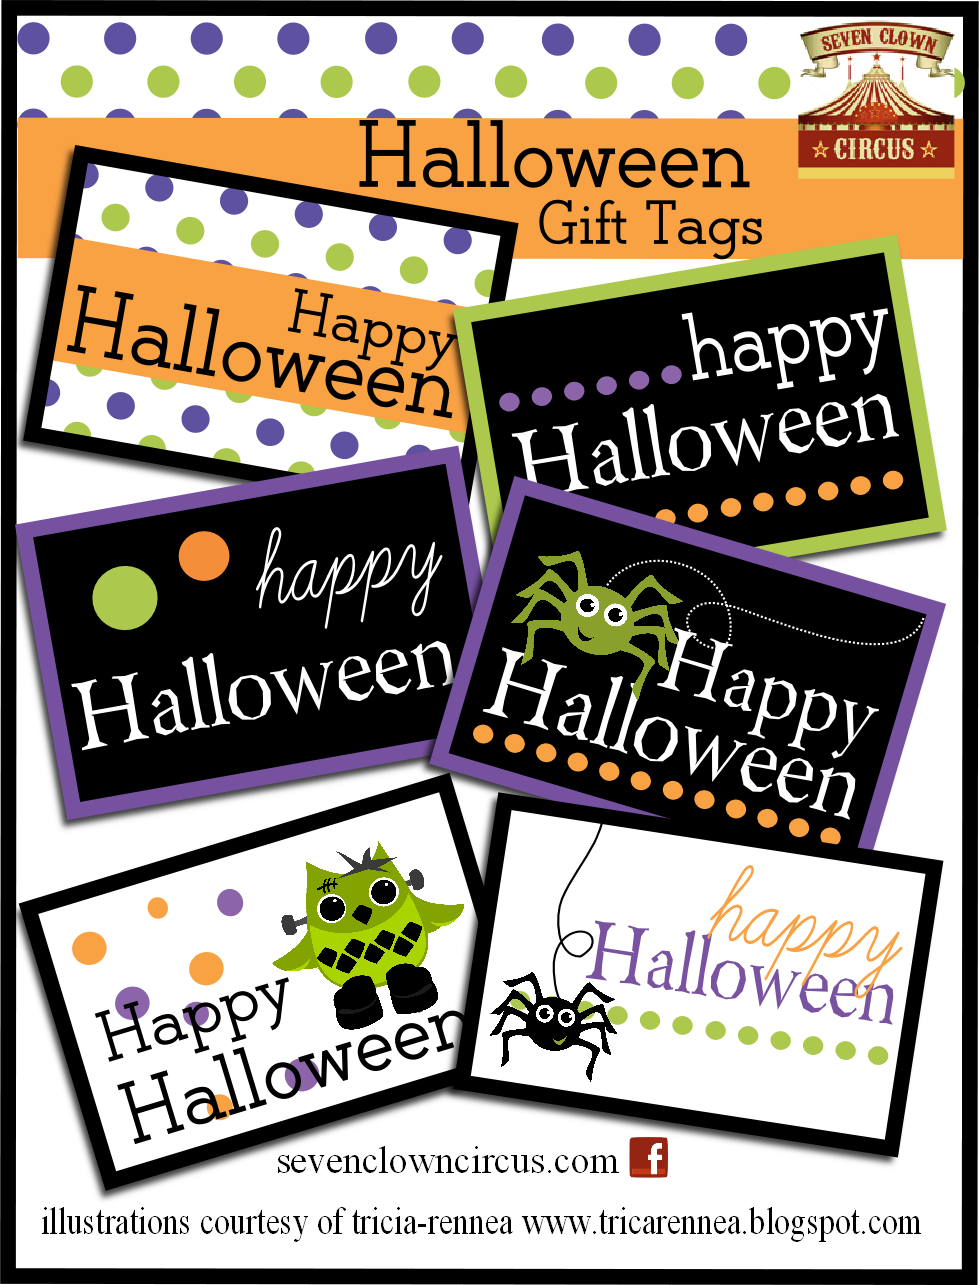 It is an image of Halloween Gift Tags Printable for happy